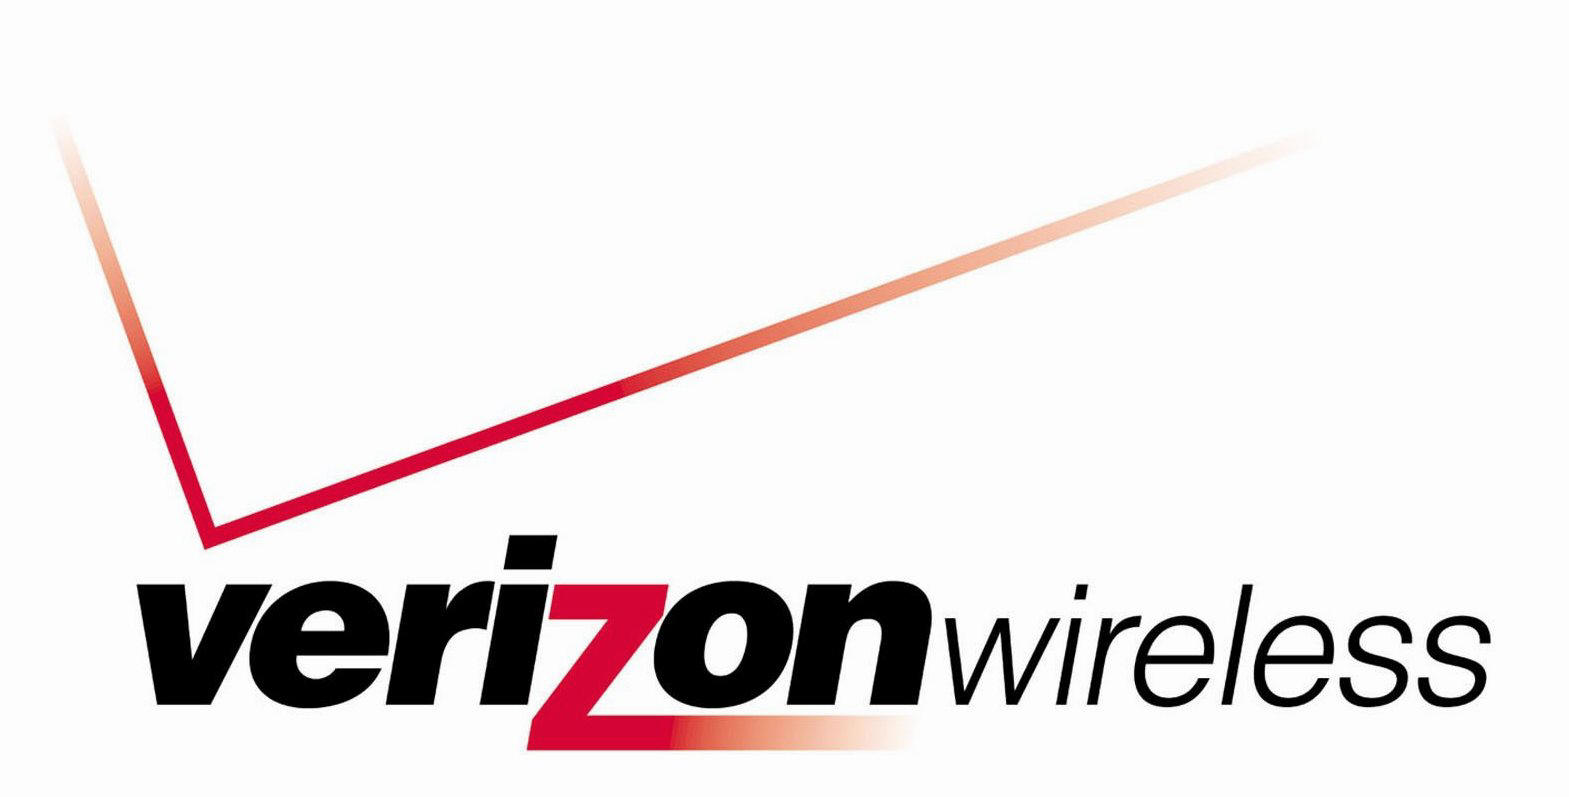 Thank you for your patronage and being a supporter of Verizon. Anthony_VZ **If someones post has helped you, please acknowledge their assistance by clicking .